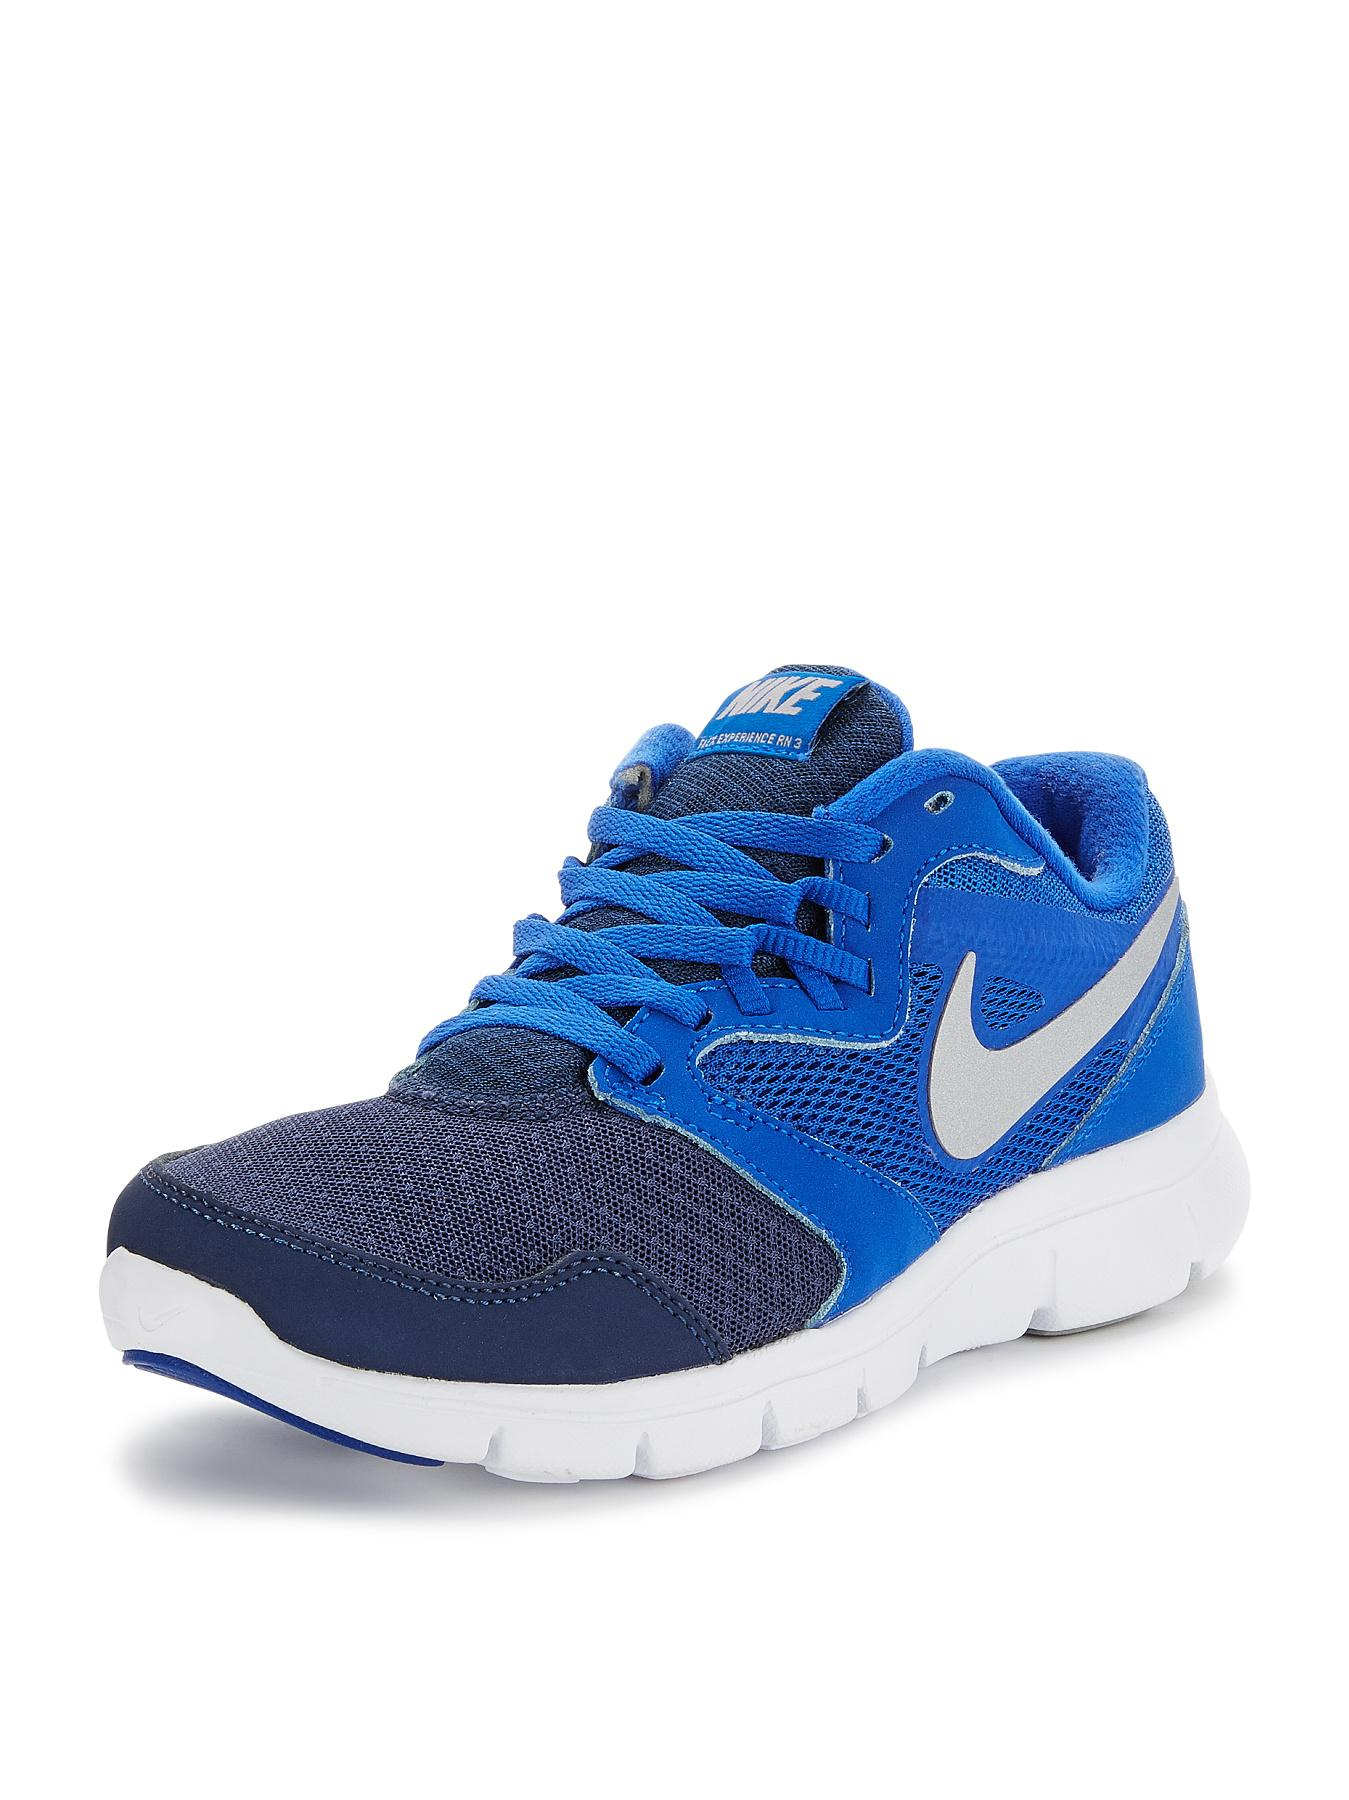 Nike Flex Experience 3 Junior Trainers - Blue, Blue